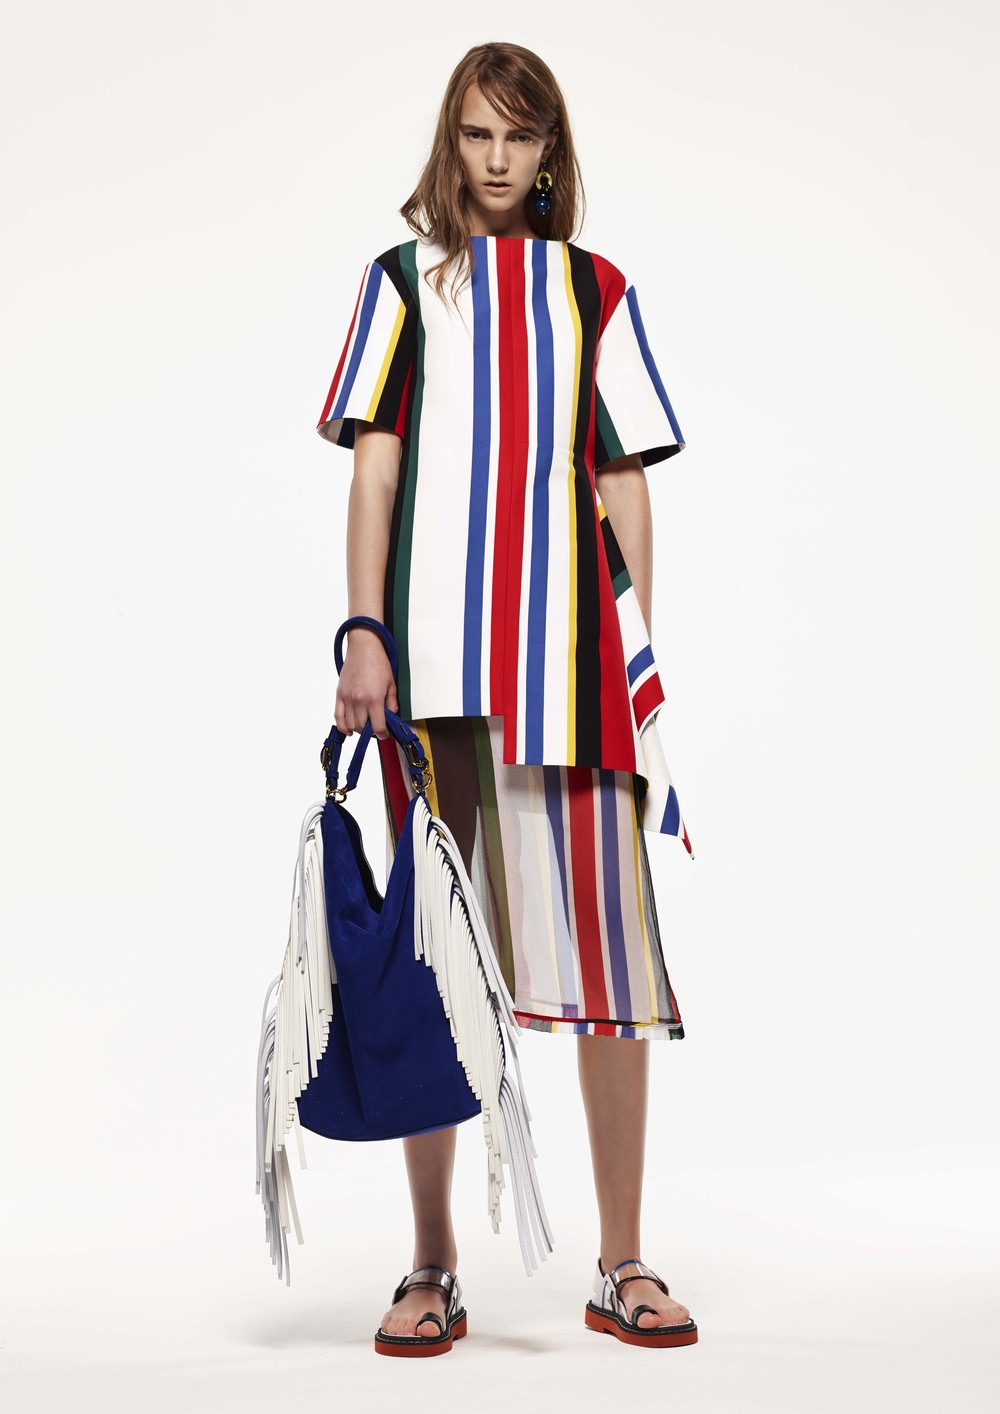 22 - MARNI RESORT 2015 COLLECTION.jpg